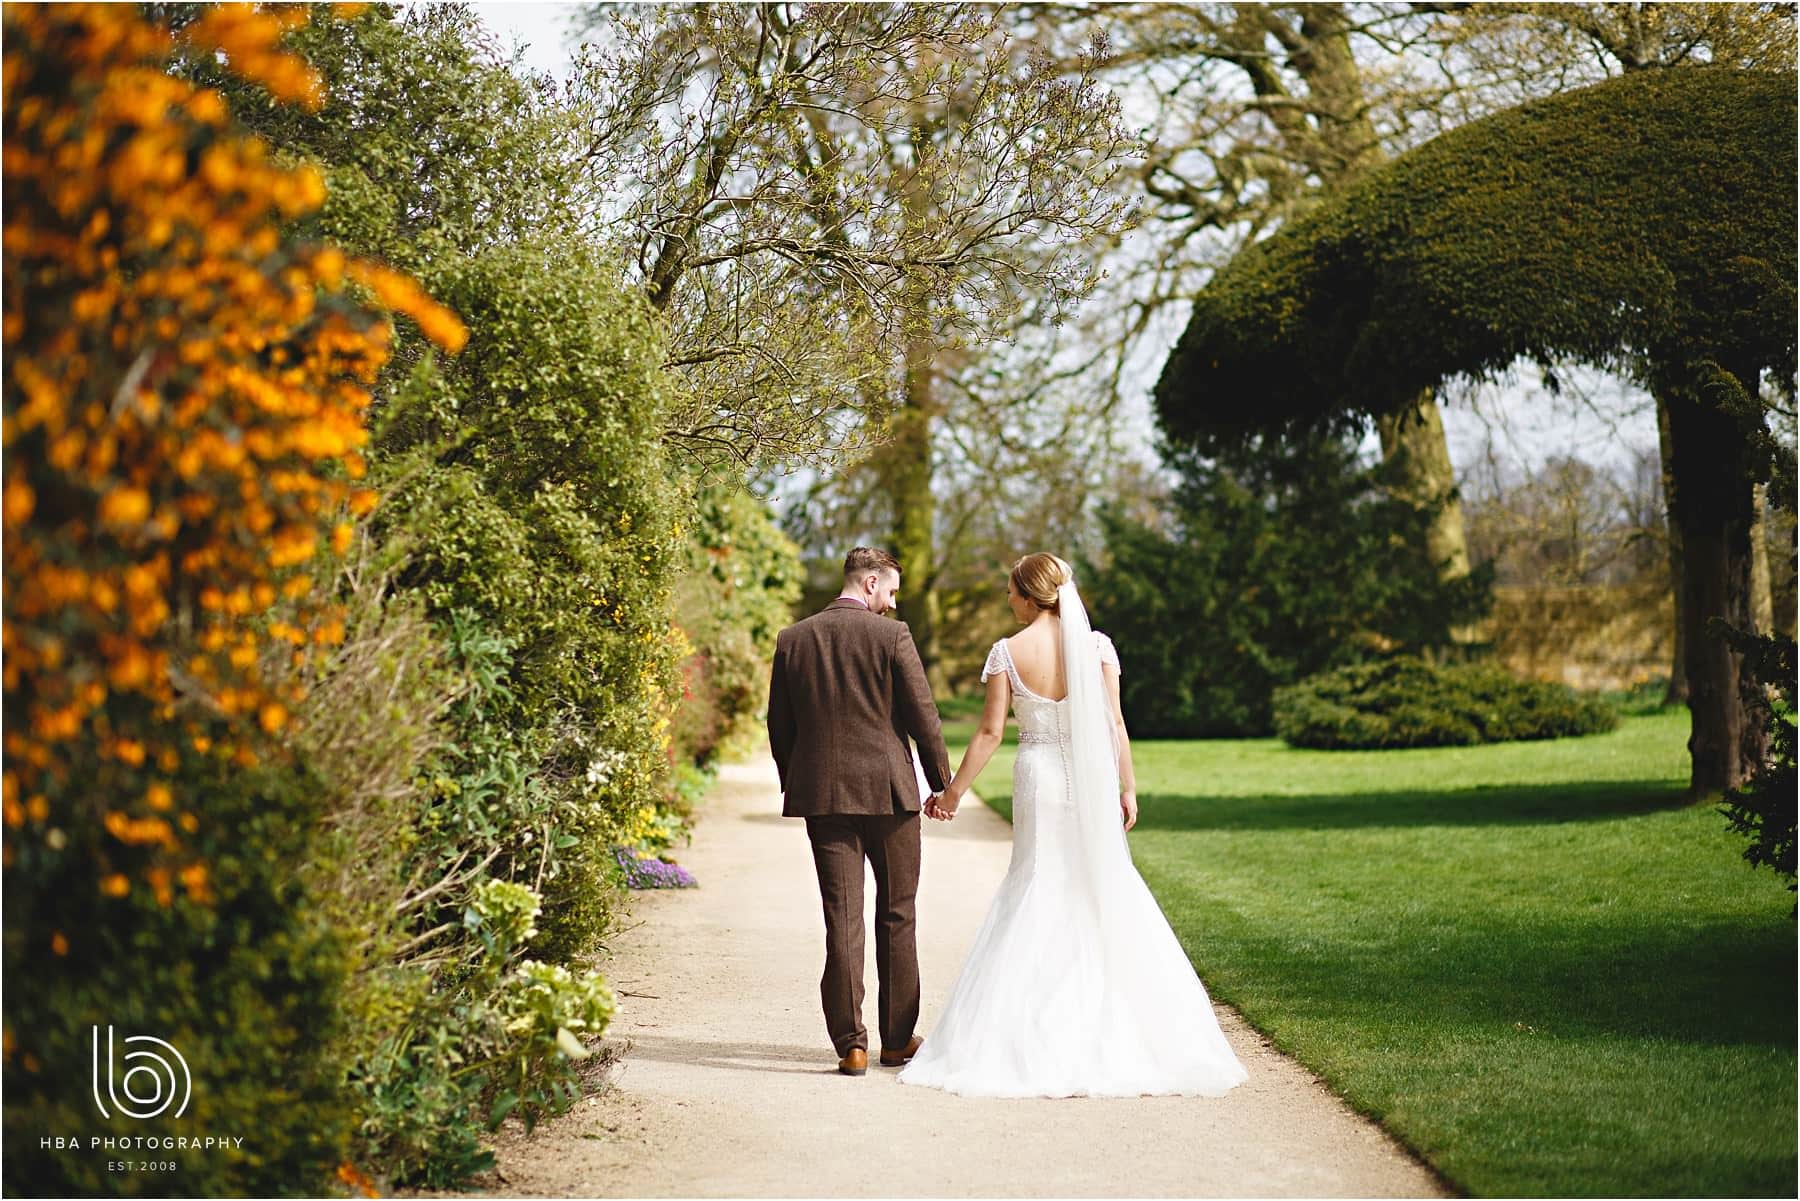 The bride and groom walking down the garden paths at Hardwick Hall